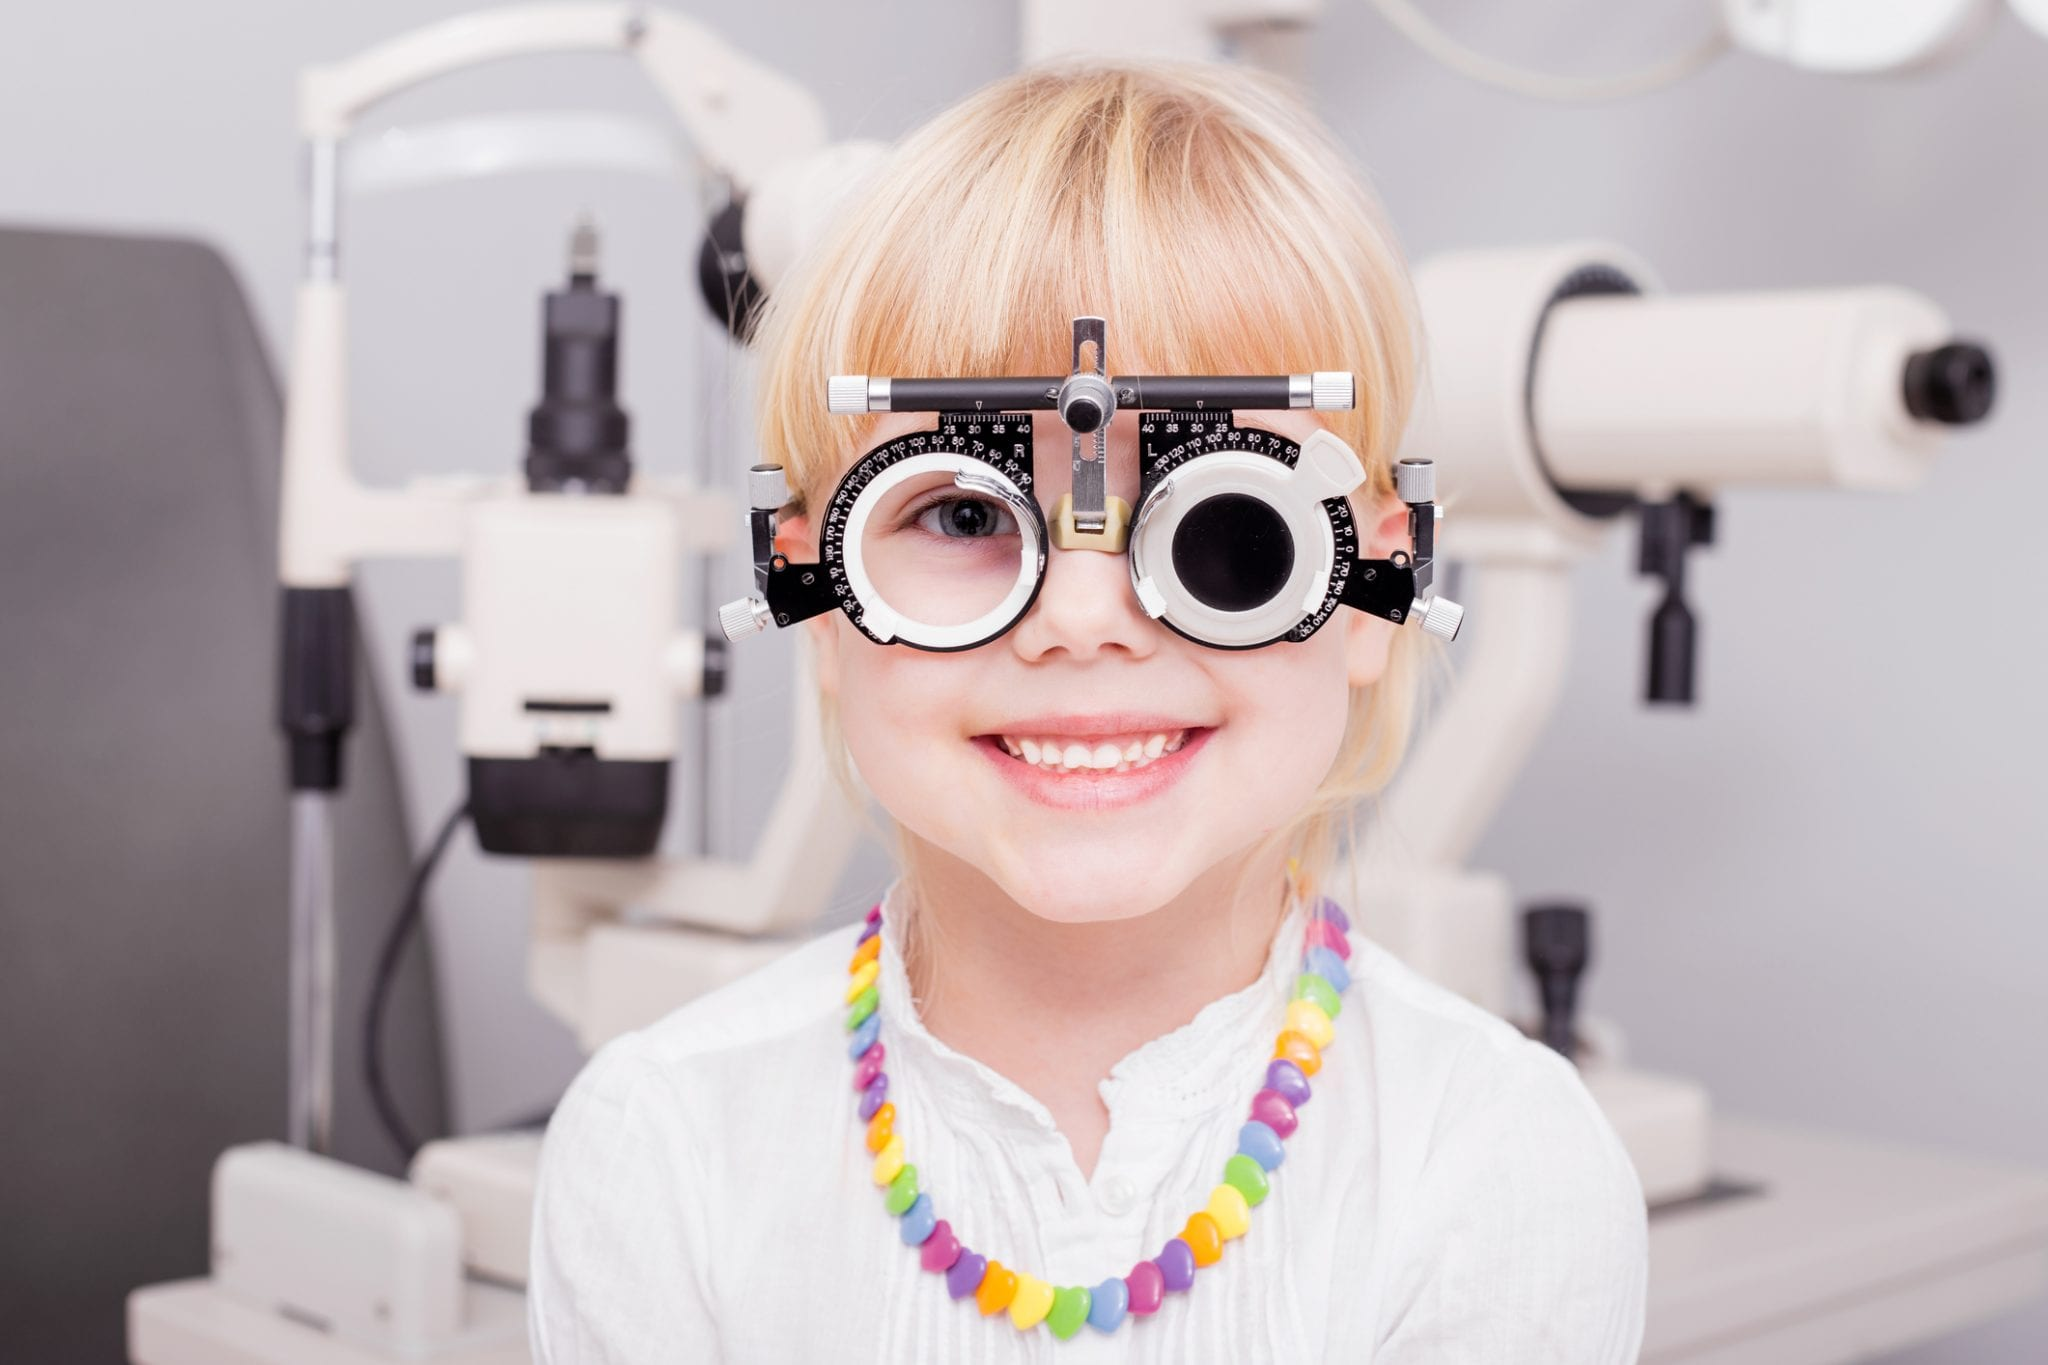 Comprehensive eye exam for a child